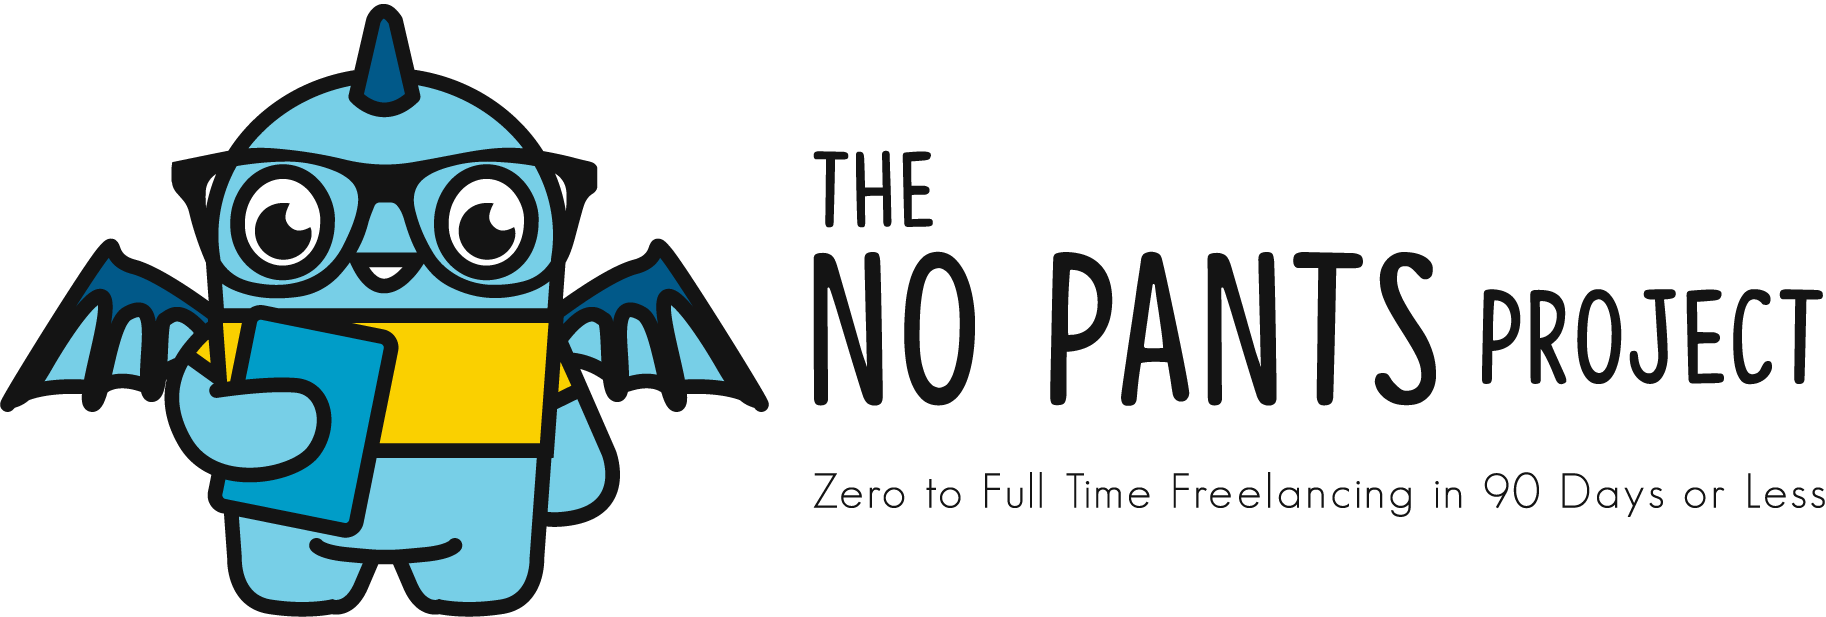 The No Pants Project Blog